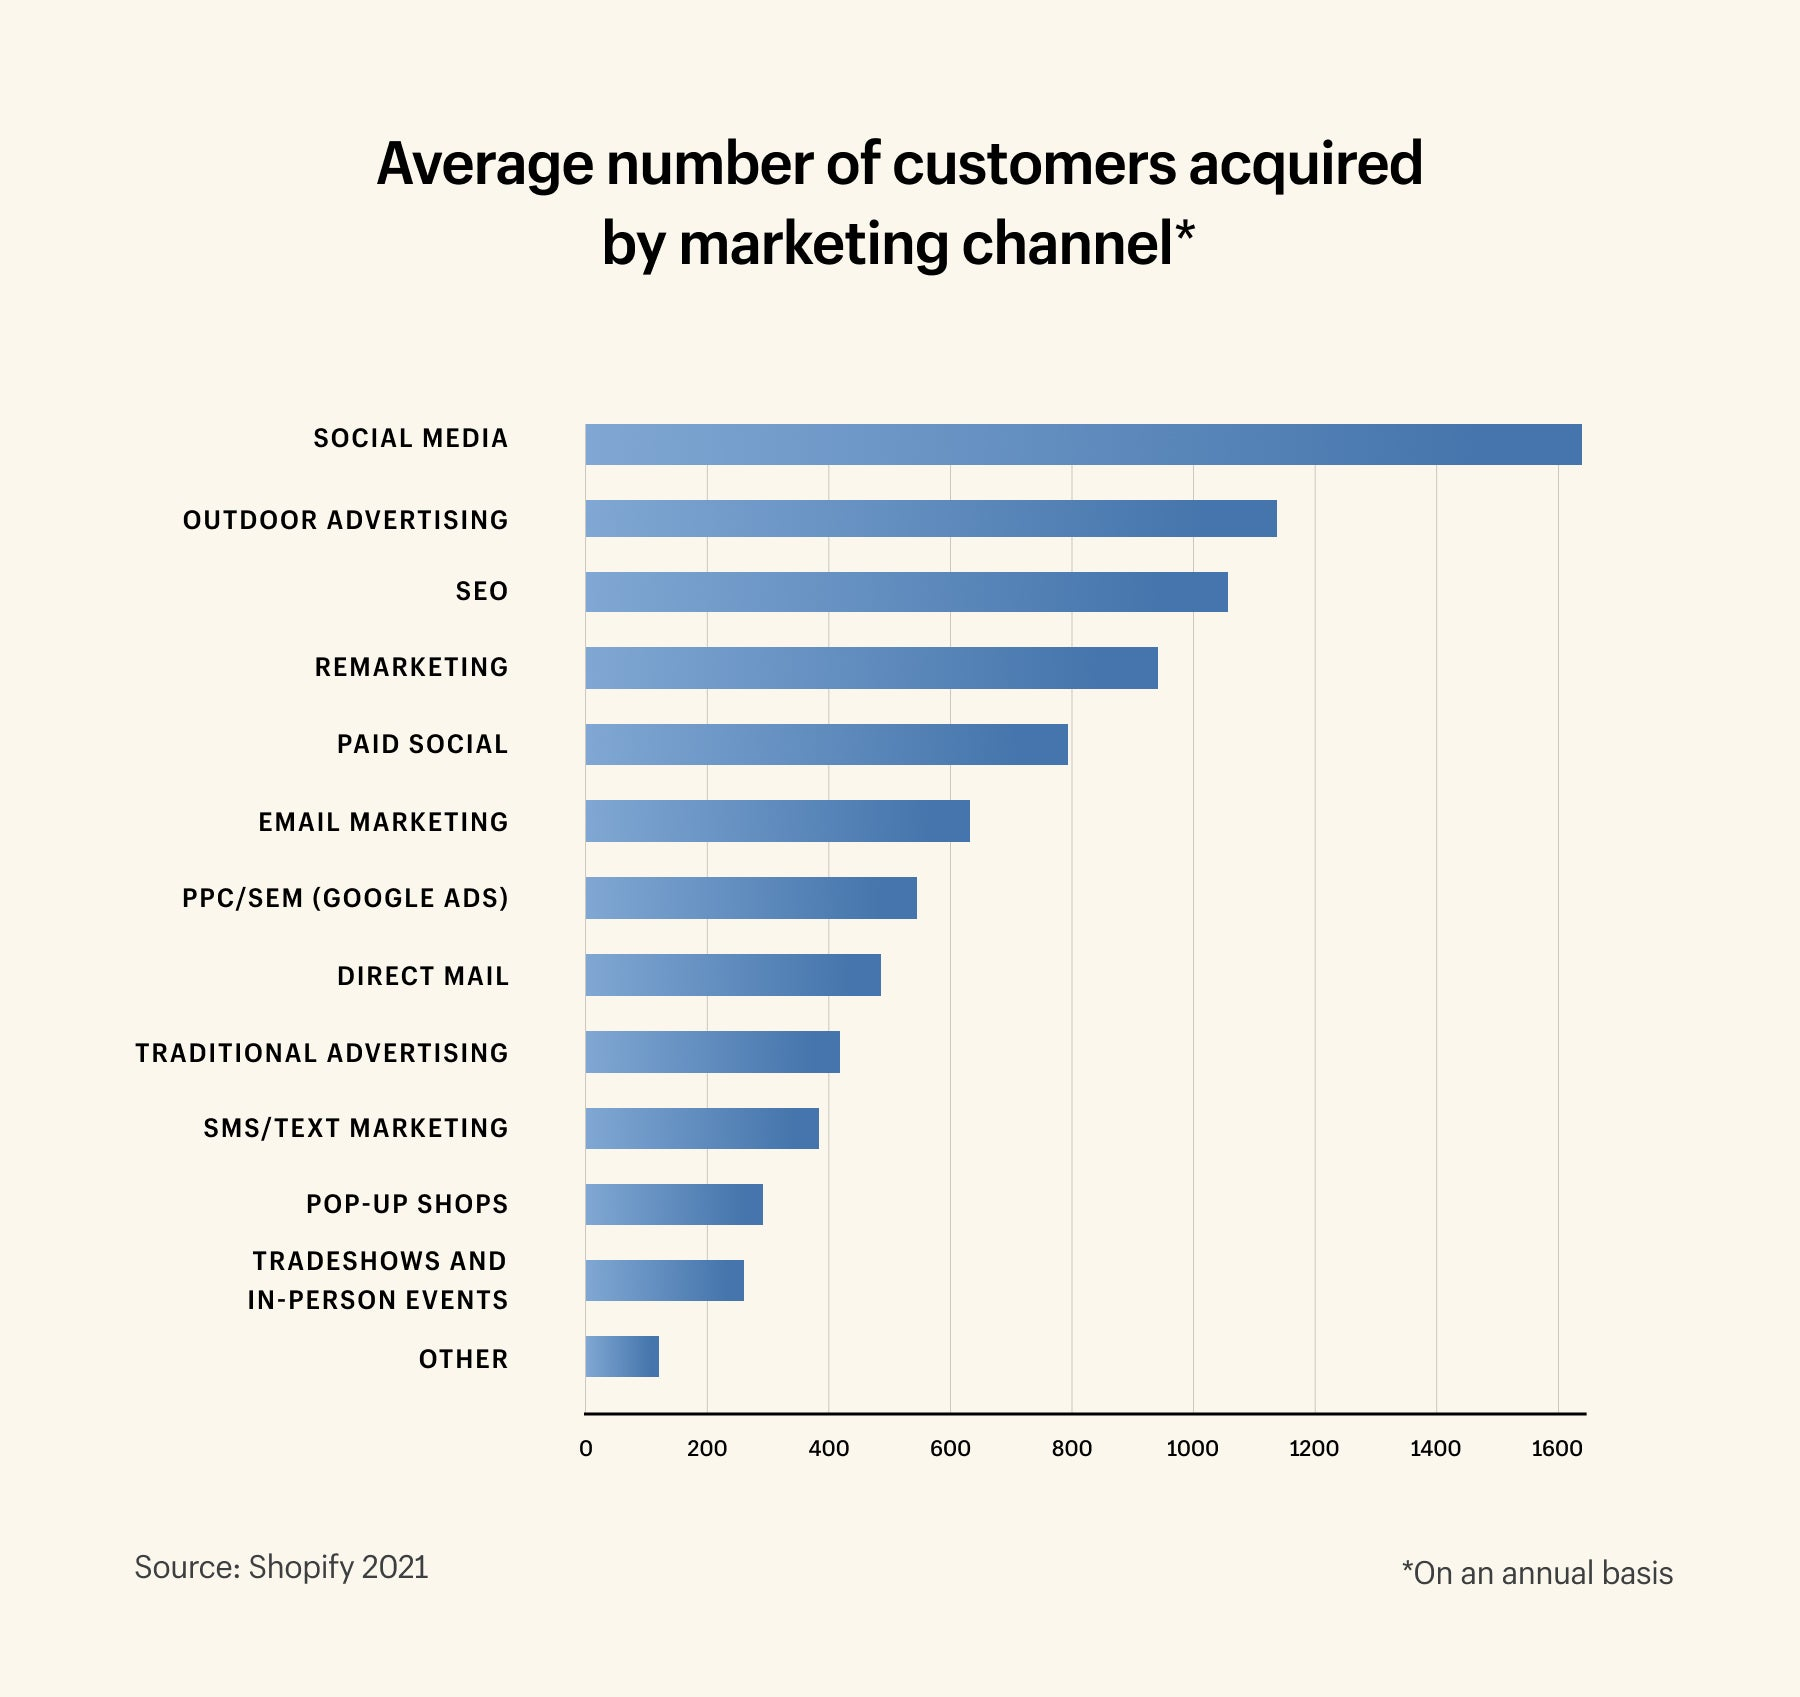 Customers acquired by each marketing channel